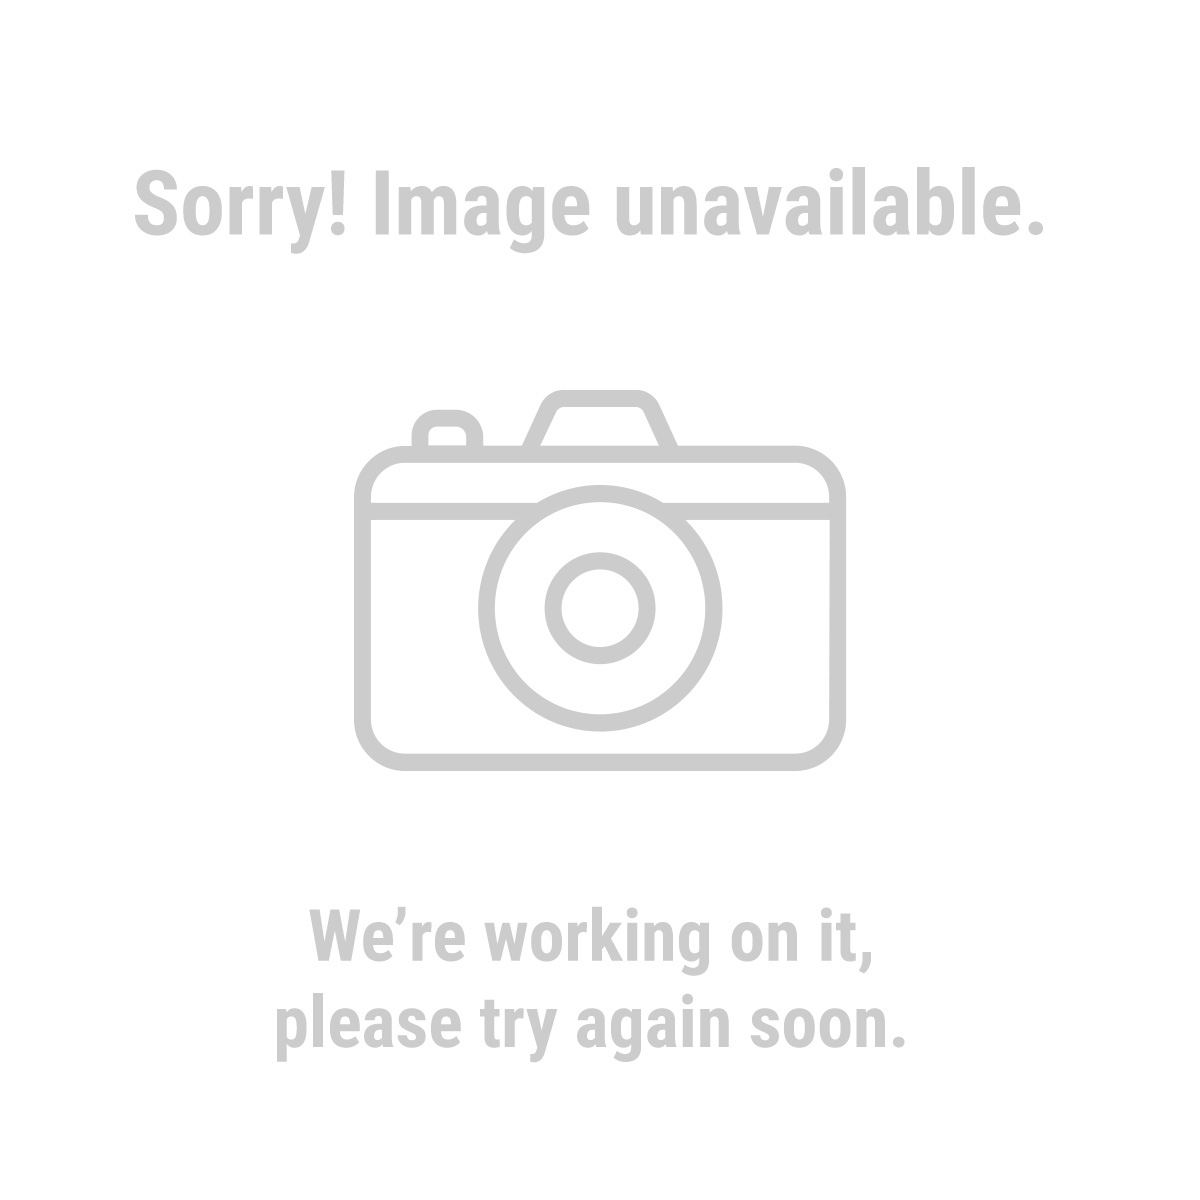 Drill Master 93079 Pack of 10 High Speed Steel Titanium Nitride Drill Bits